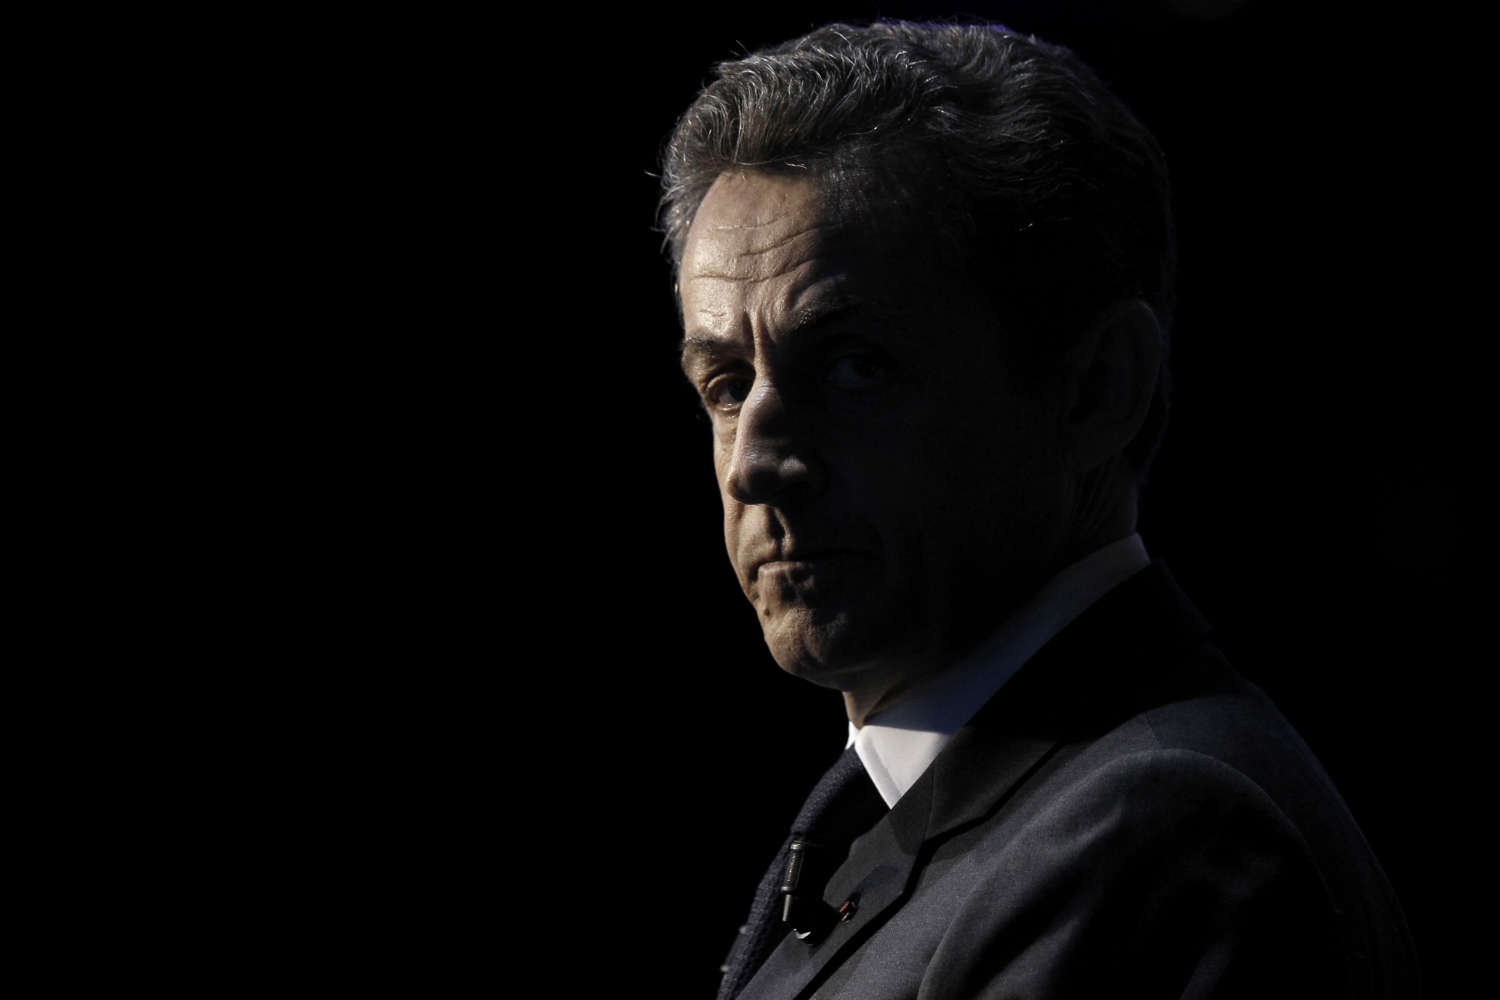 Sarkozy's legal cloud puts his political future in doubt